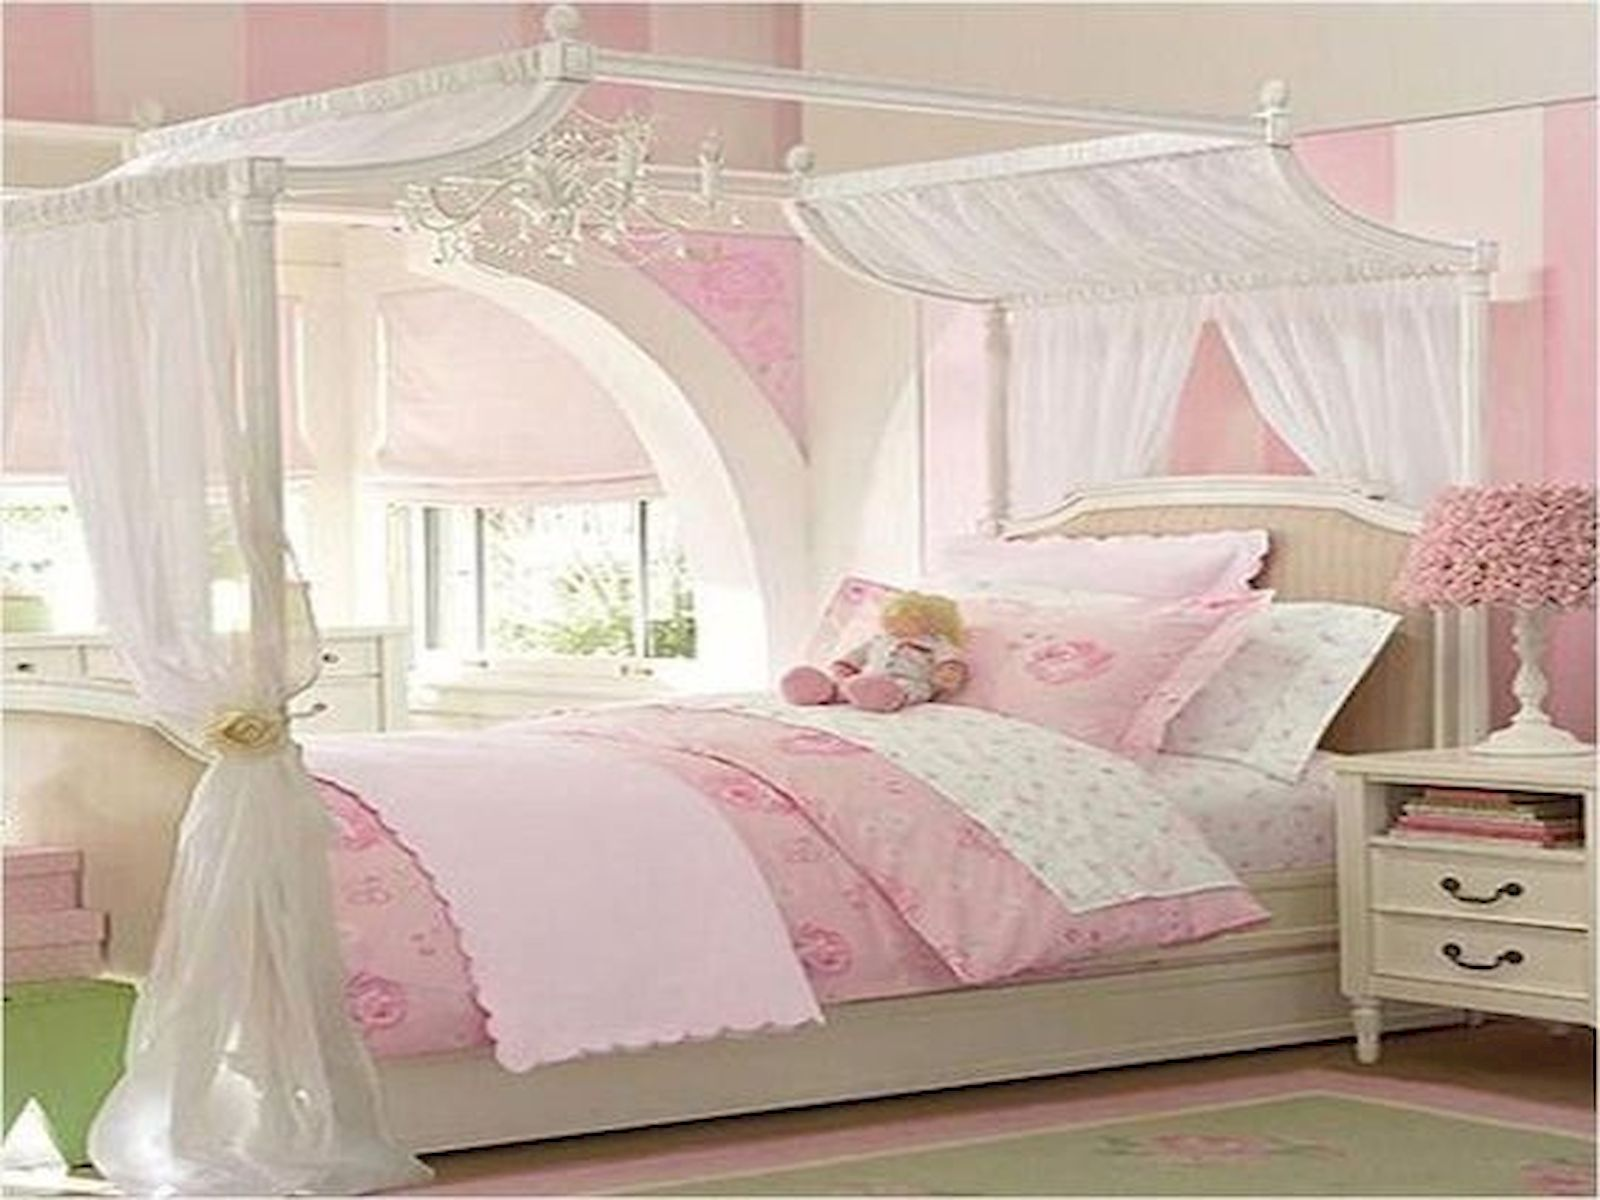 40 Cute Small Bedroom Design and Decor Ideas for Teenage ... on Small Bedroom Ideas For Teenage Girl  id=67709